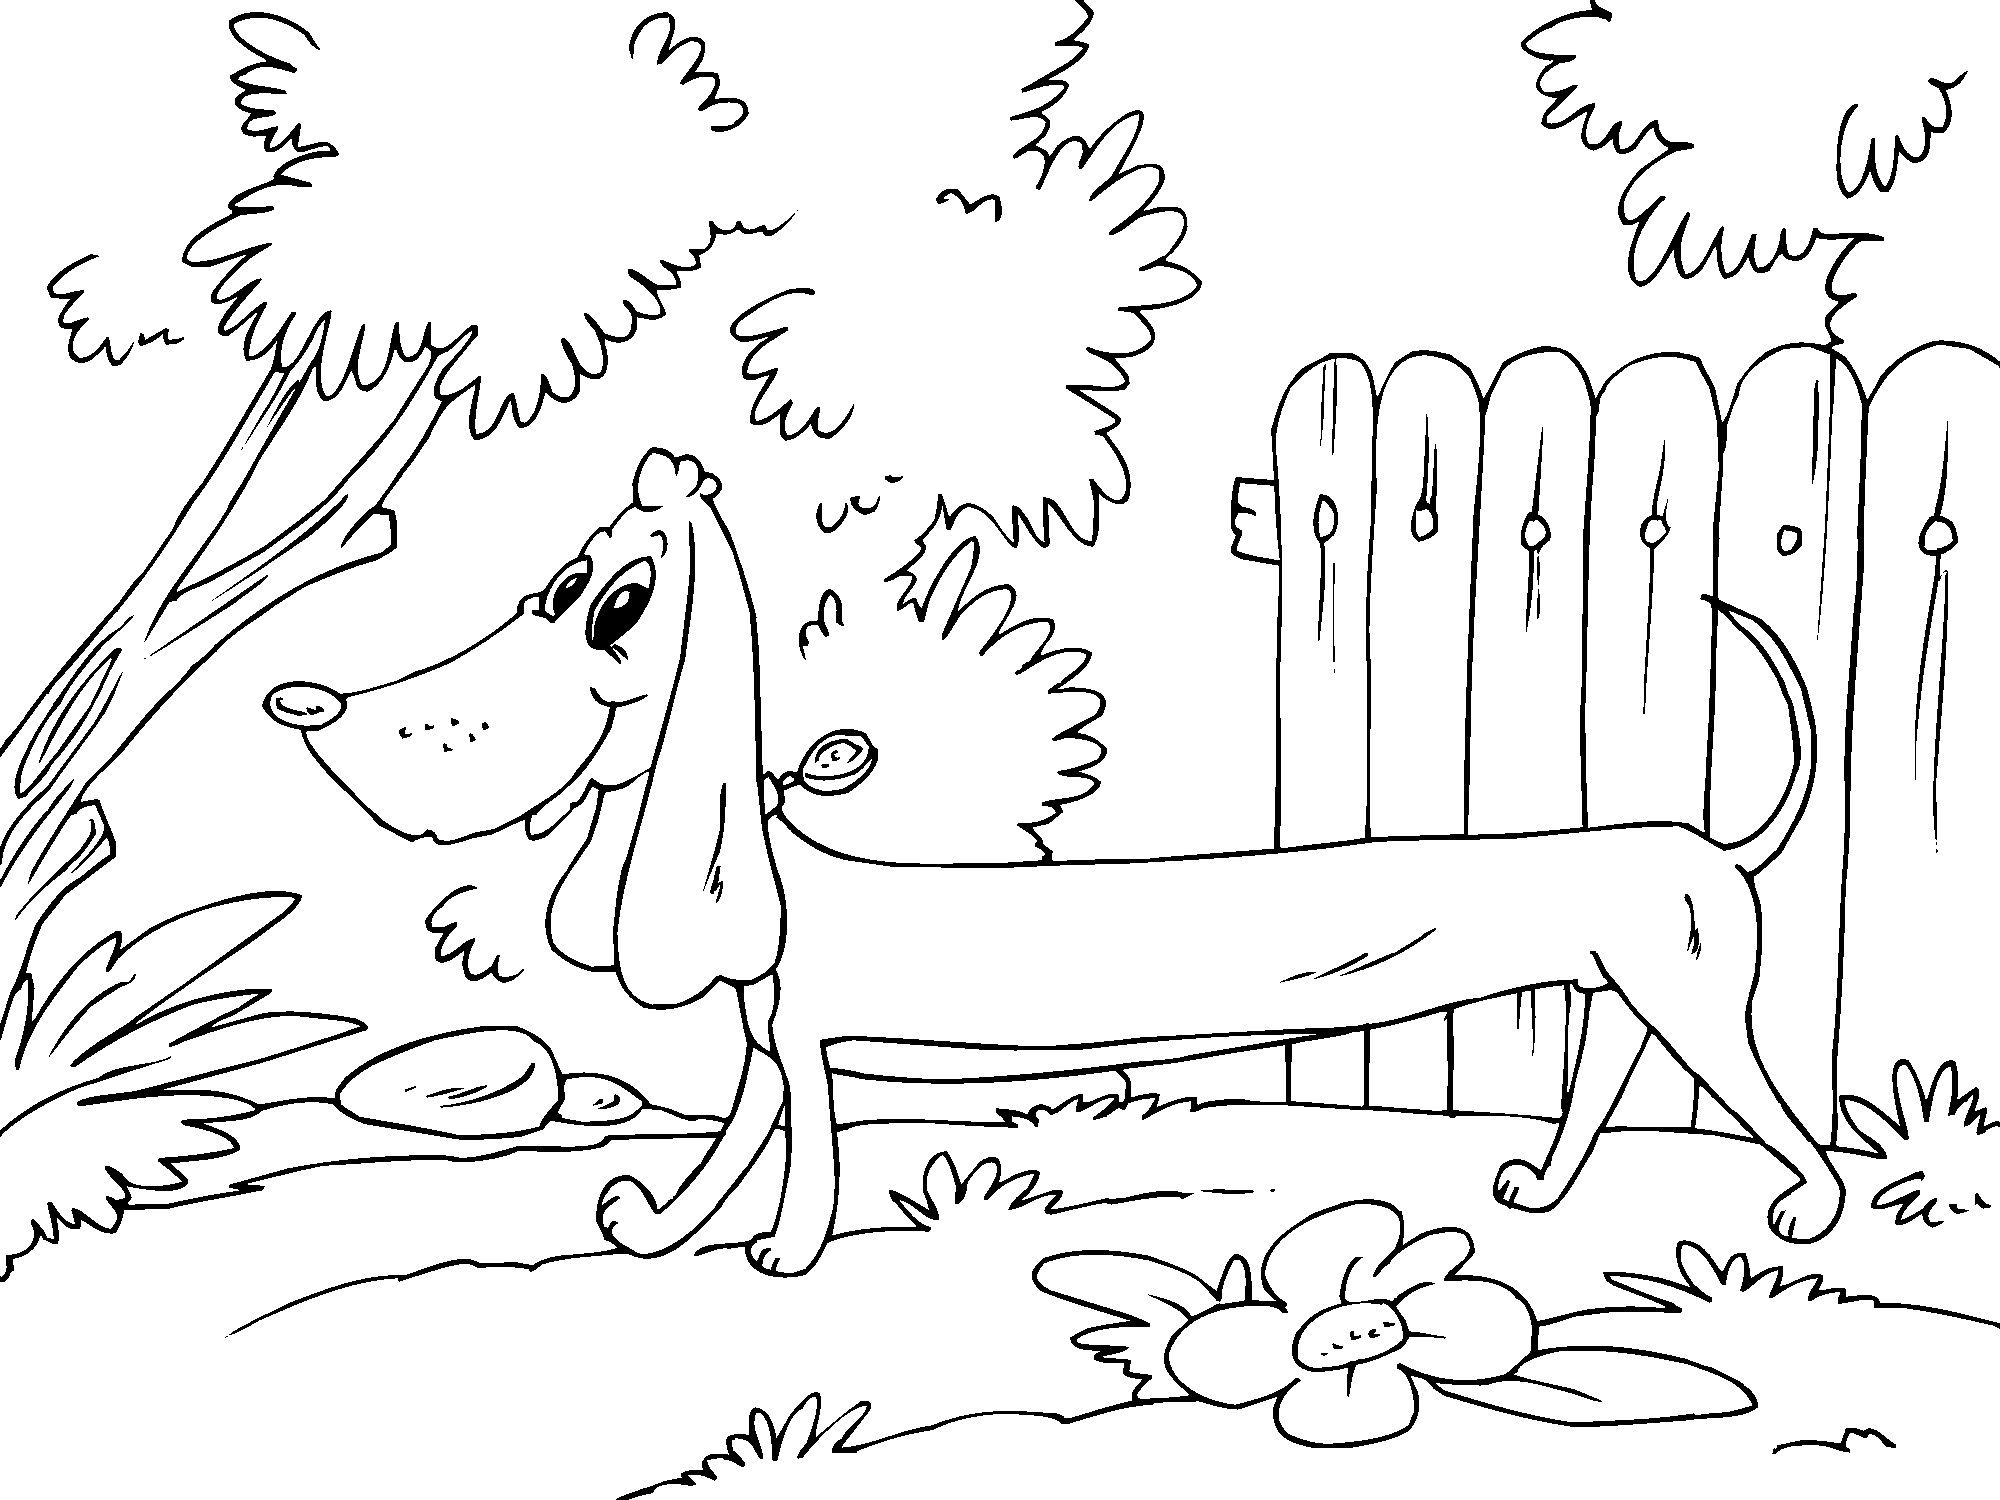 dachshund puppies coloring pages - photo#45